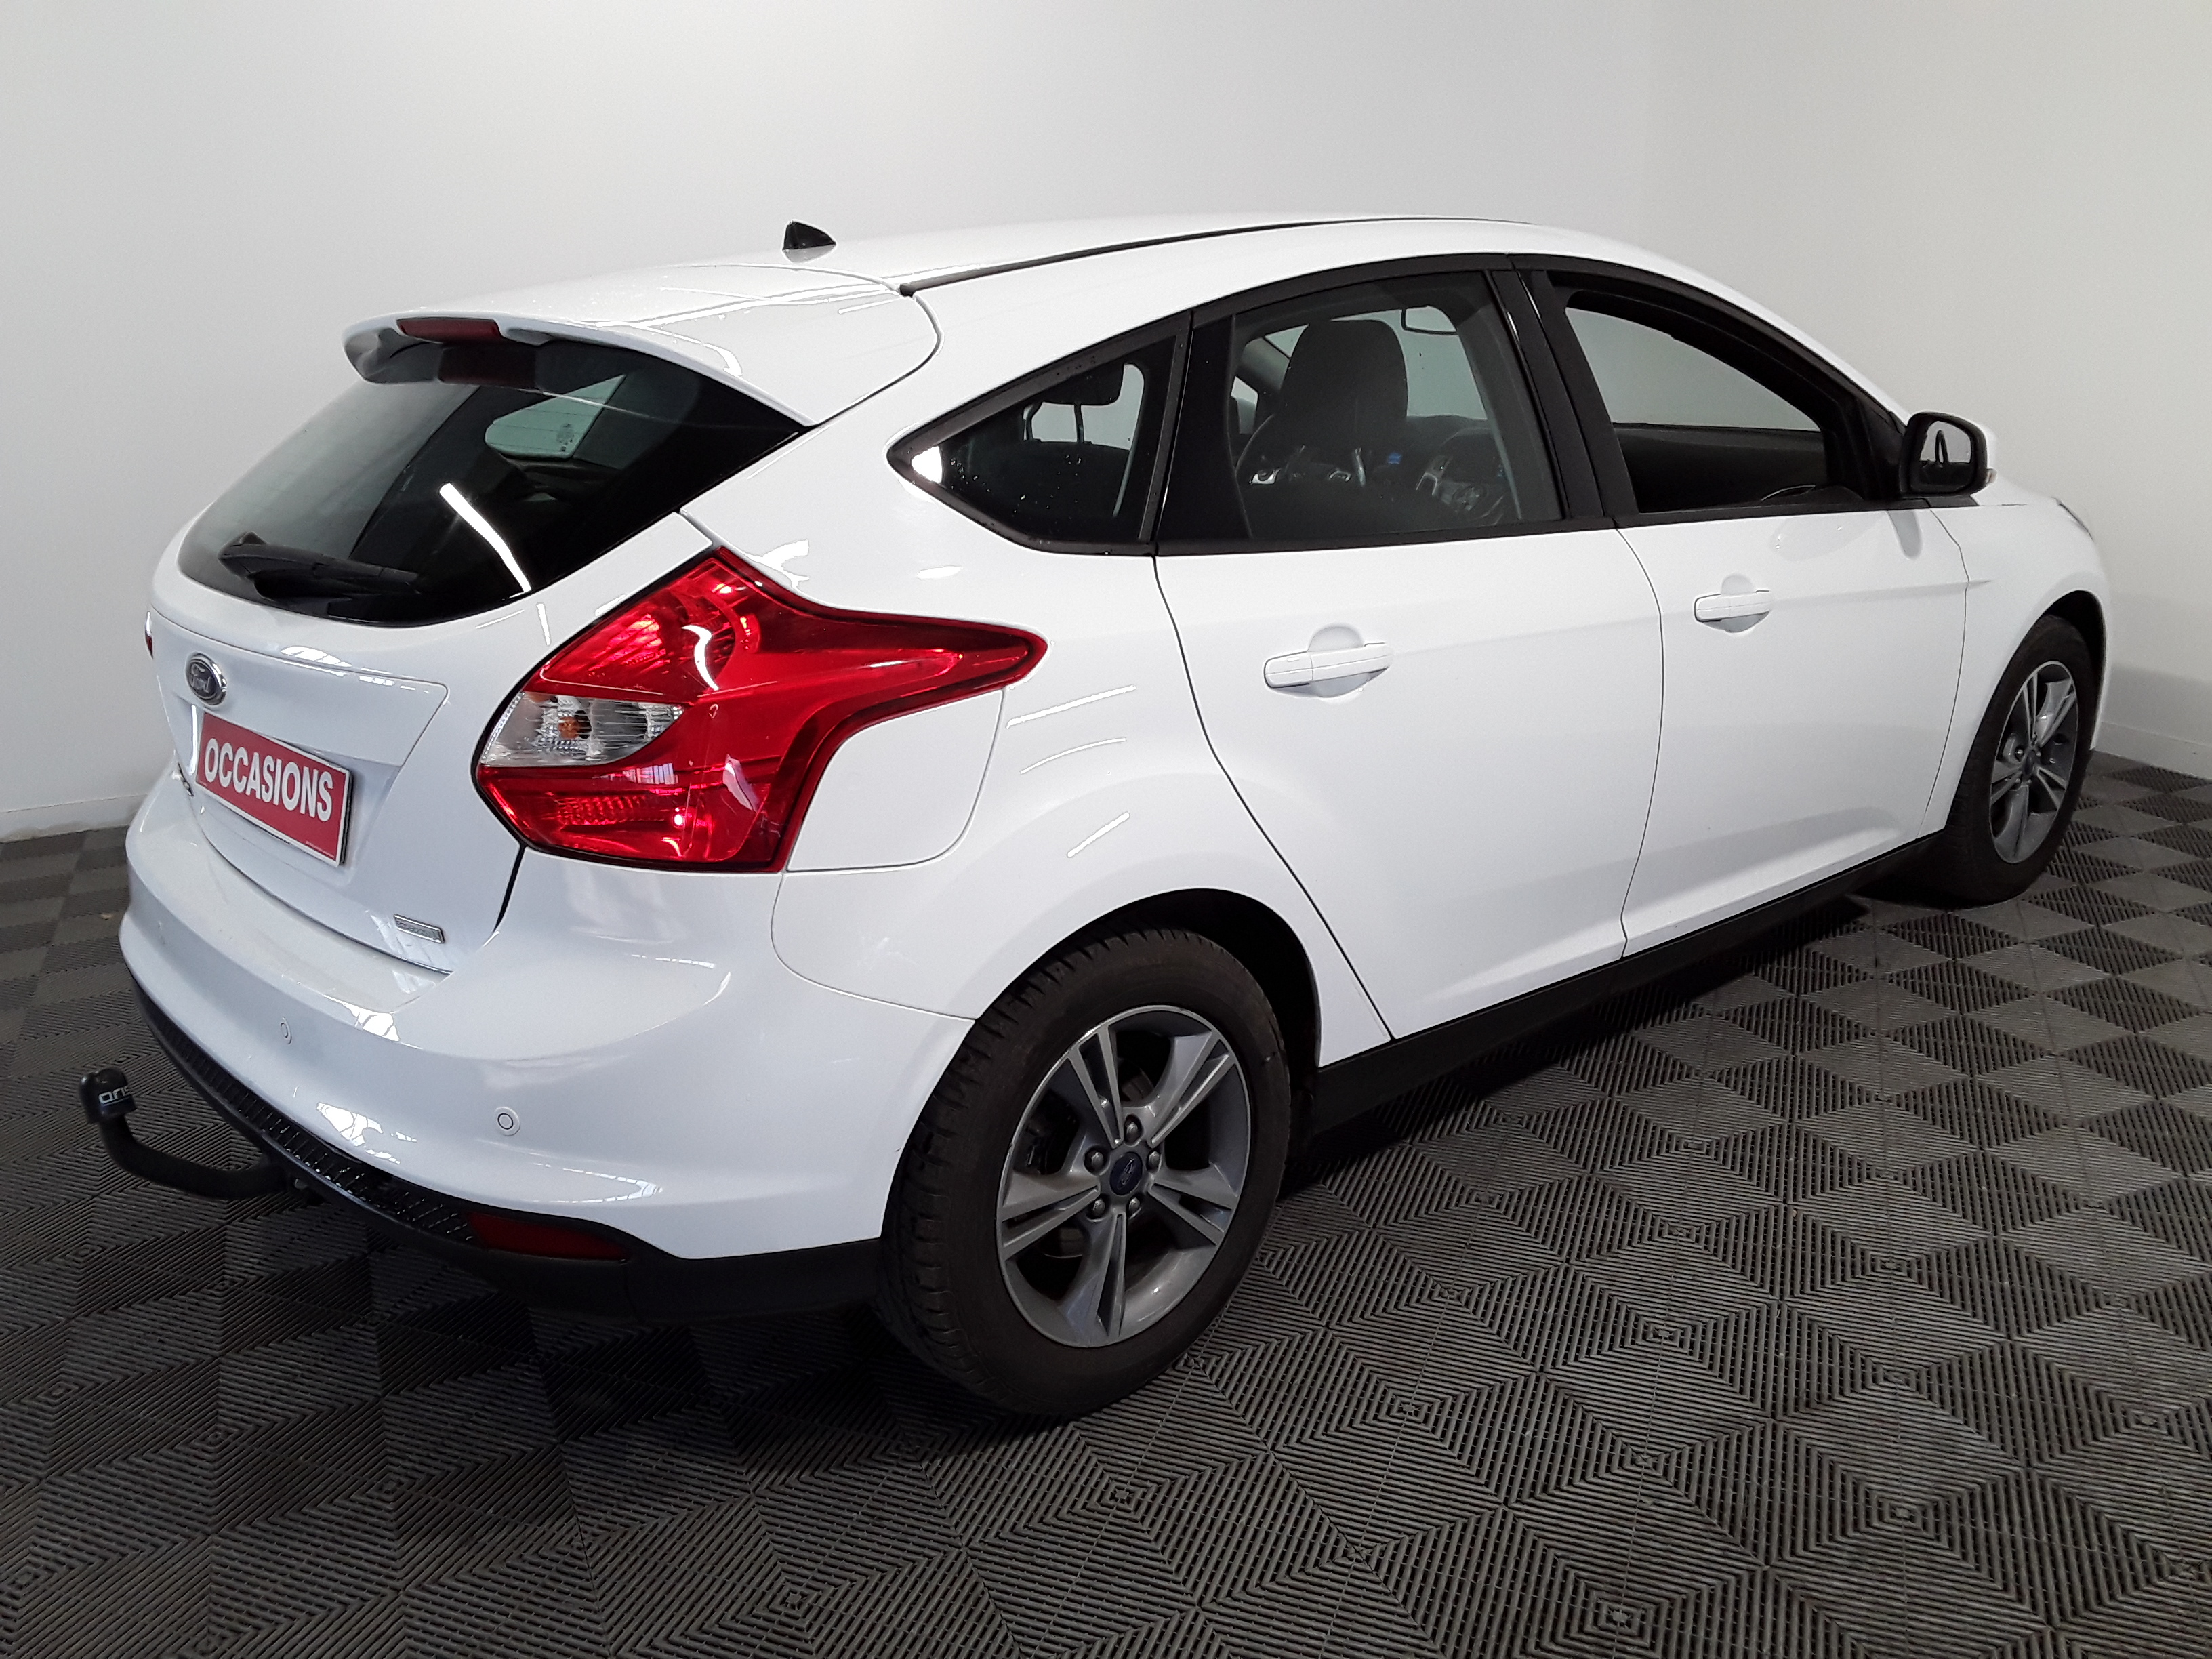 FORD FOCUS 2014 à 7900 € - Photo n°3